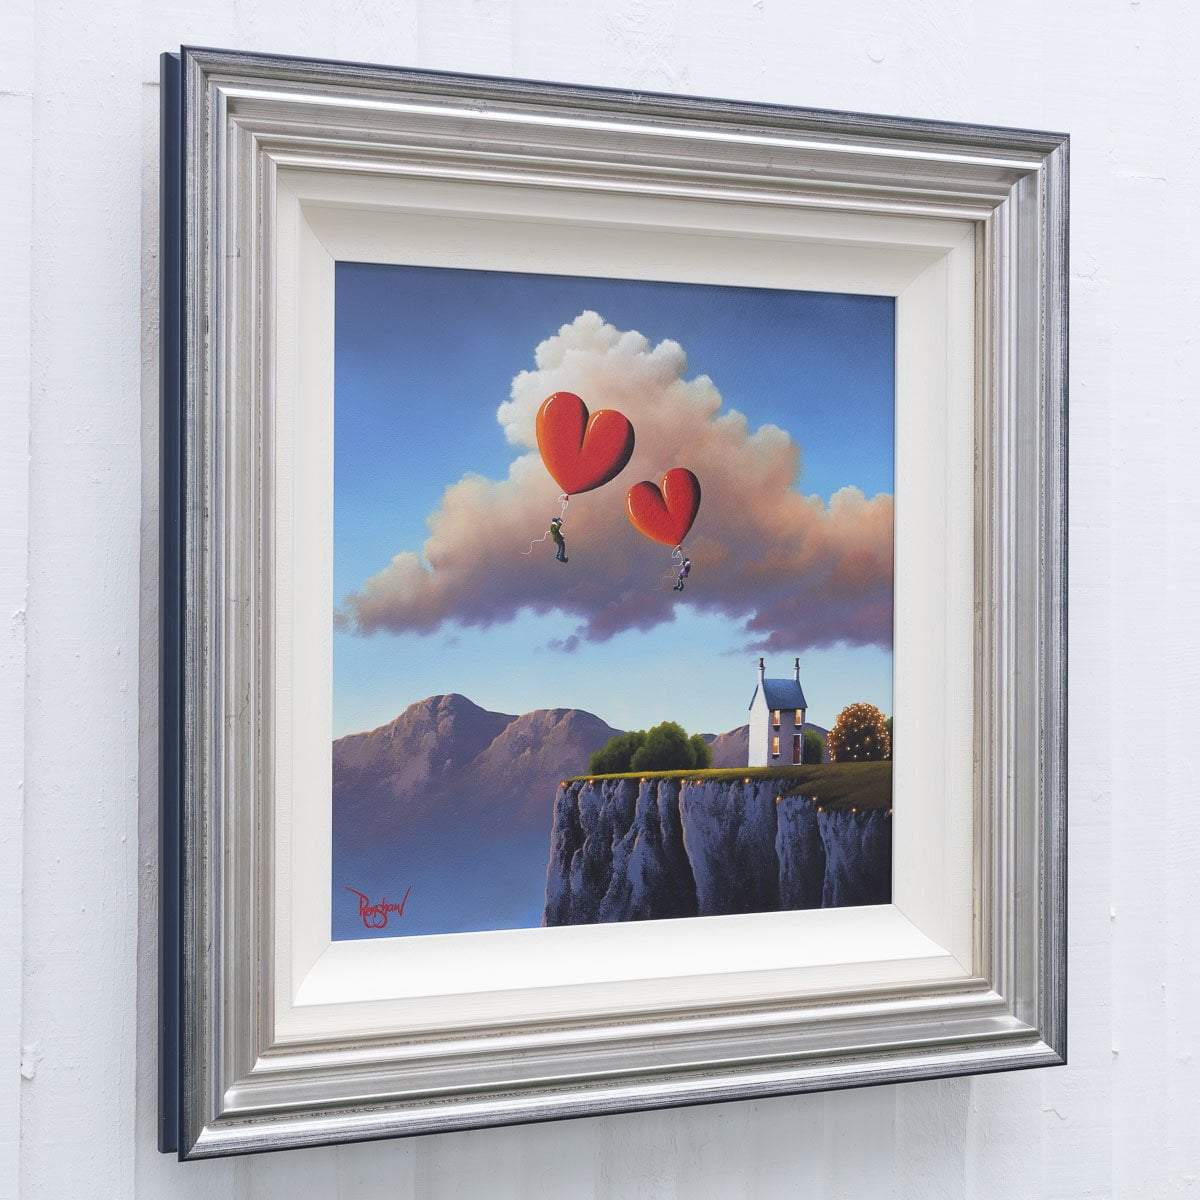 Up and Away! - Original David Renshaw Framed